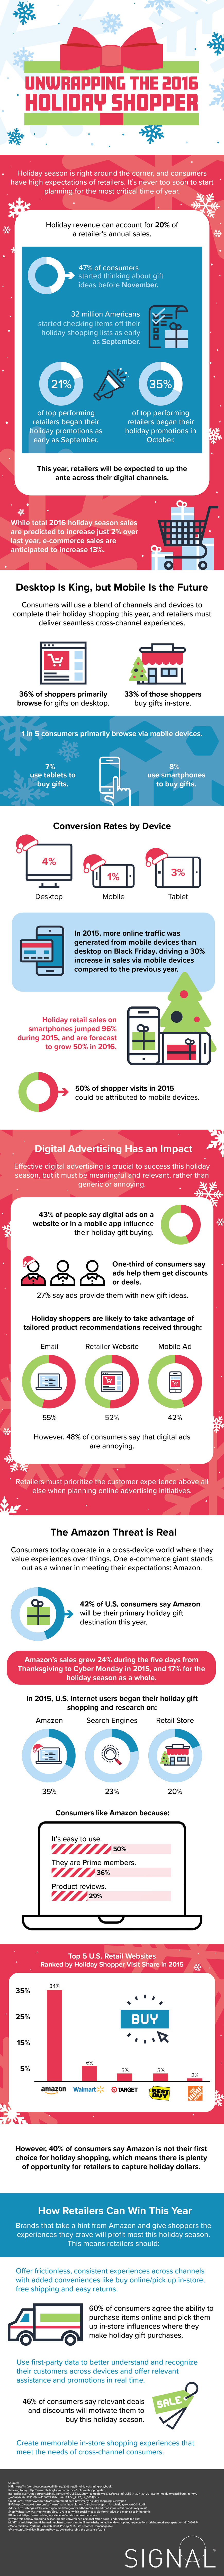 Unwrapping the 2016 Holiday Shopper